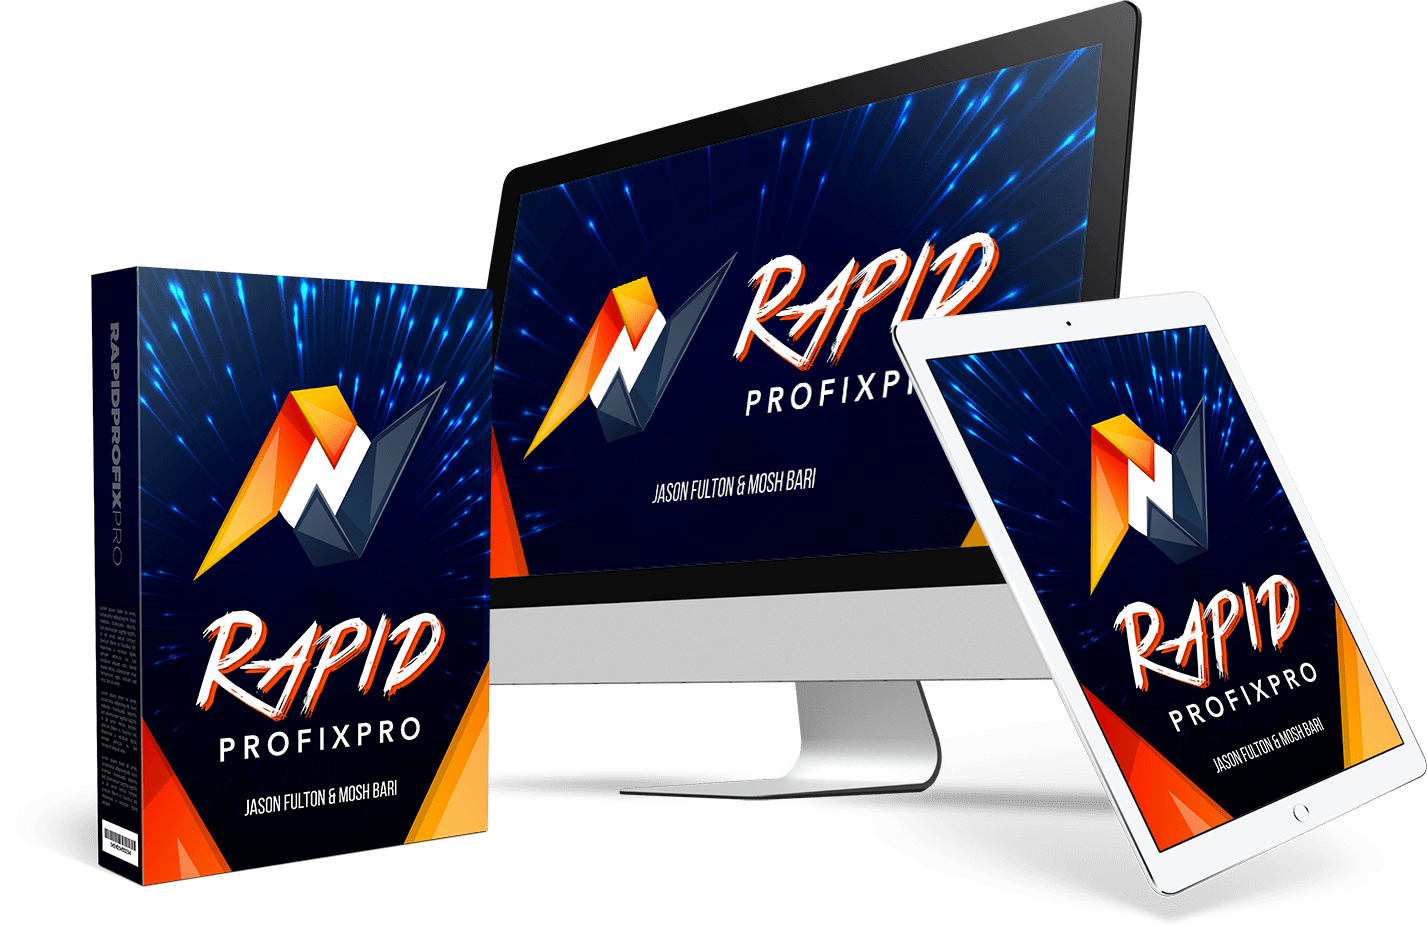 RapidProfixPro Review